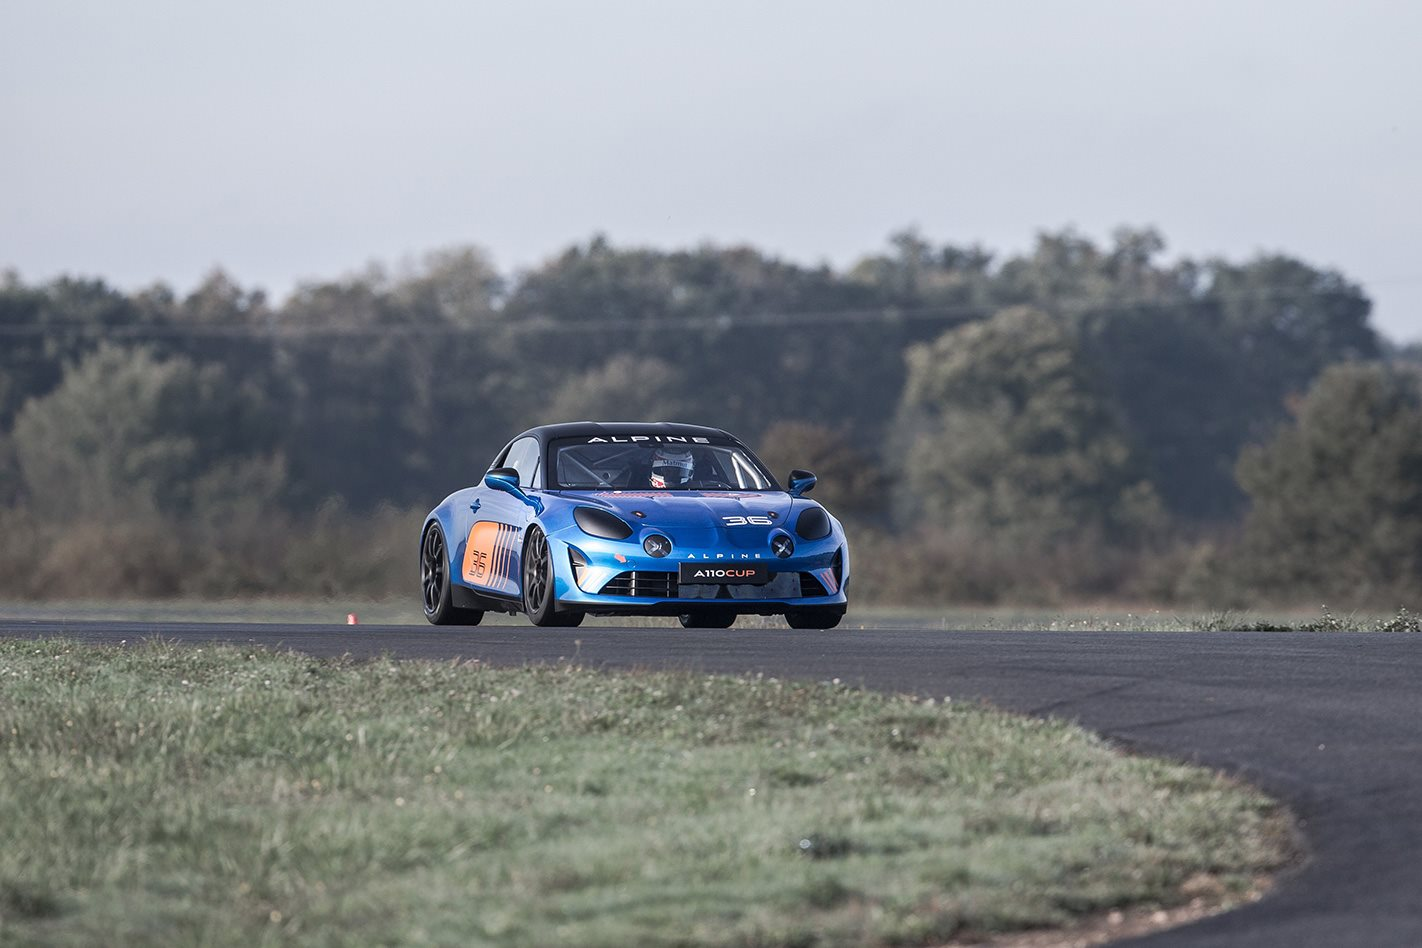 2017 Alpine A110 Cup front facing.jpg